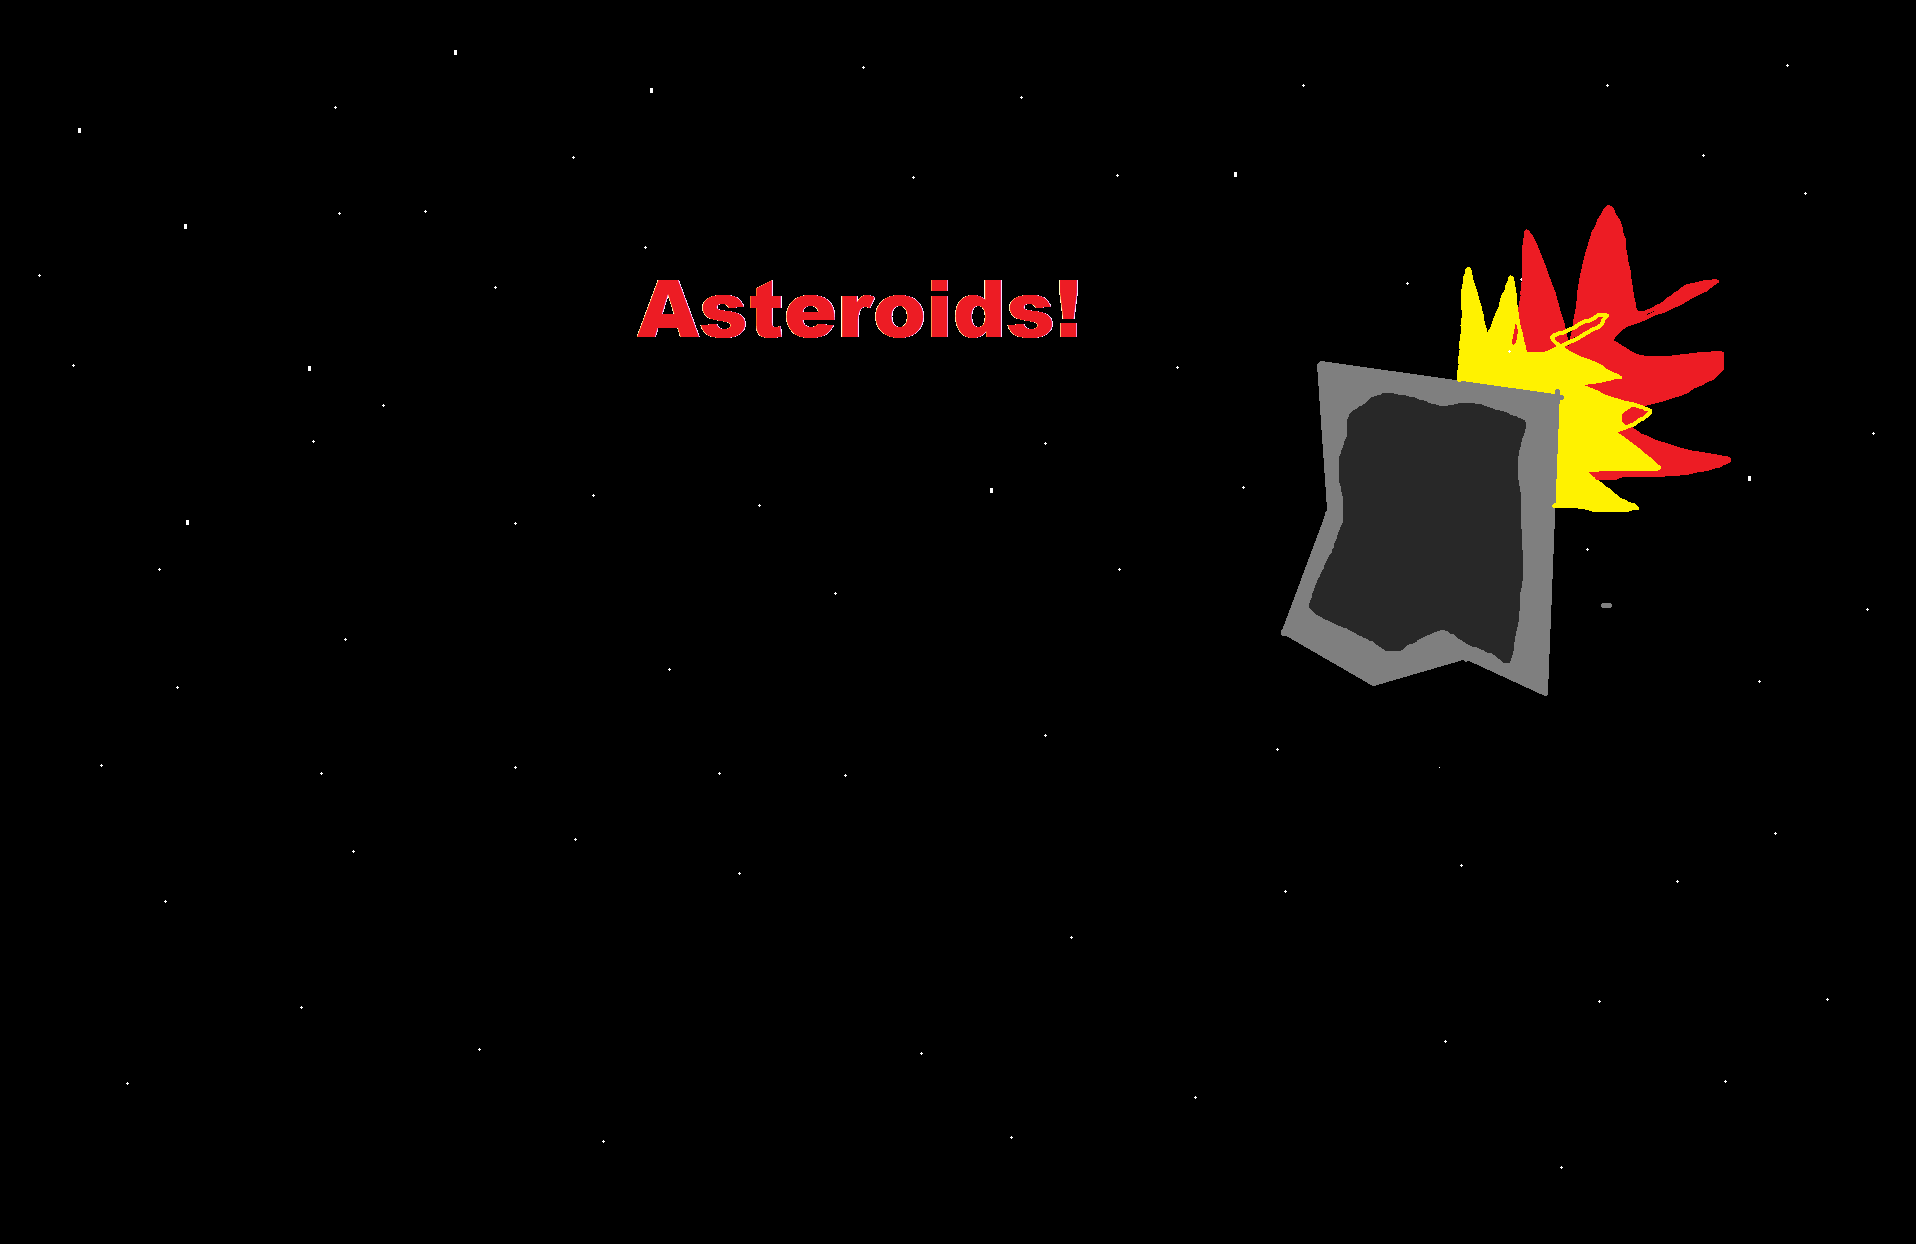 Asteroids-1979